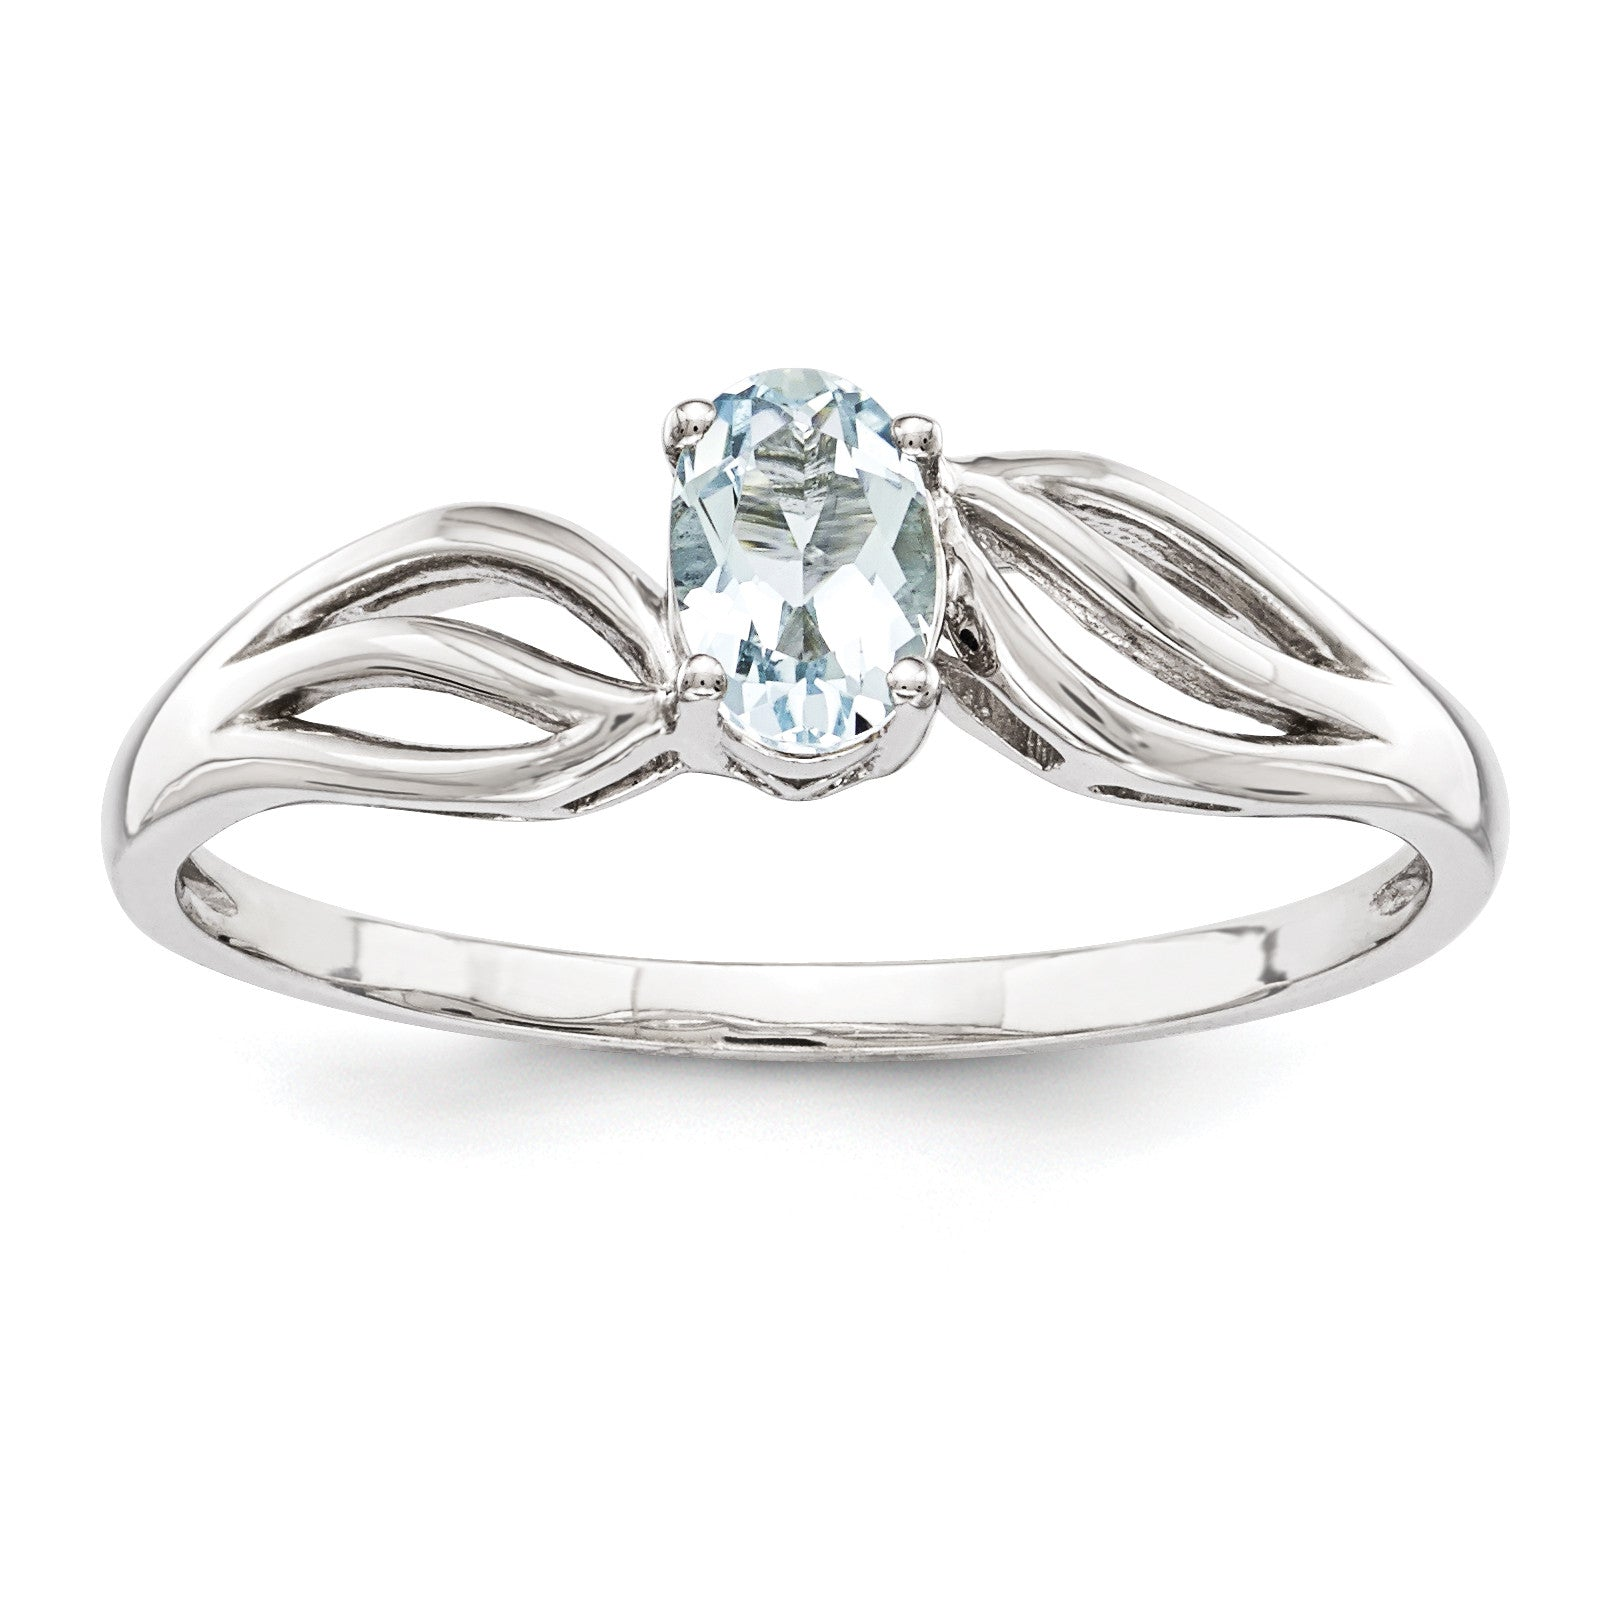 Sterling Silver Rhodium-plated Aquamarine Ring QBR17MAR - shirin-diamonds